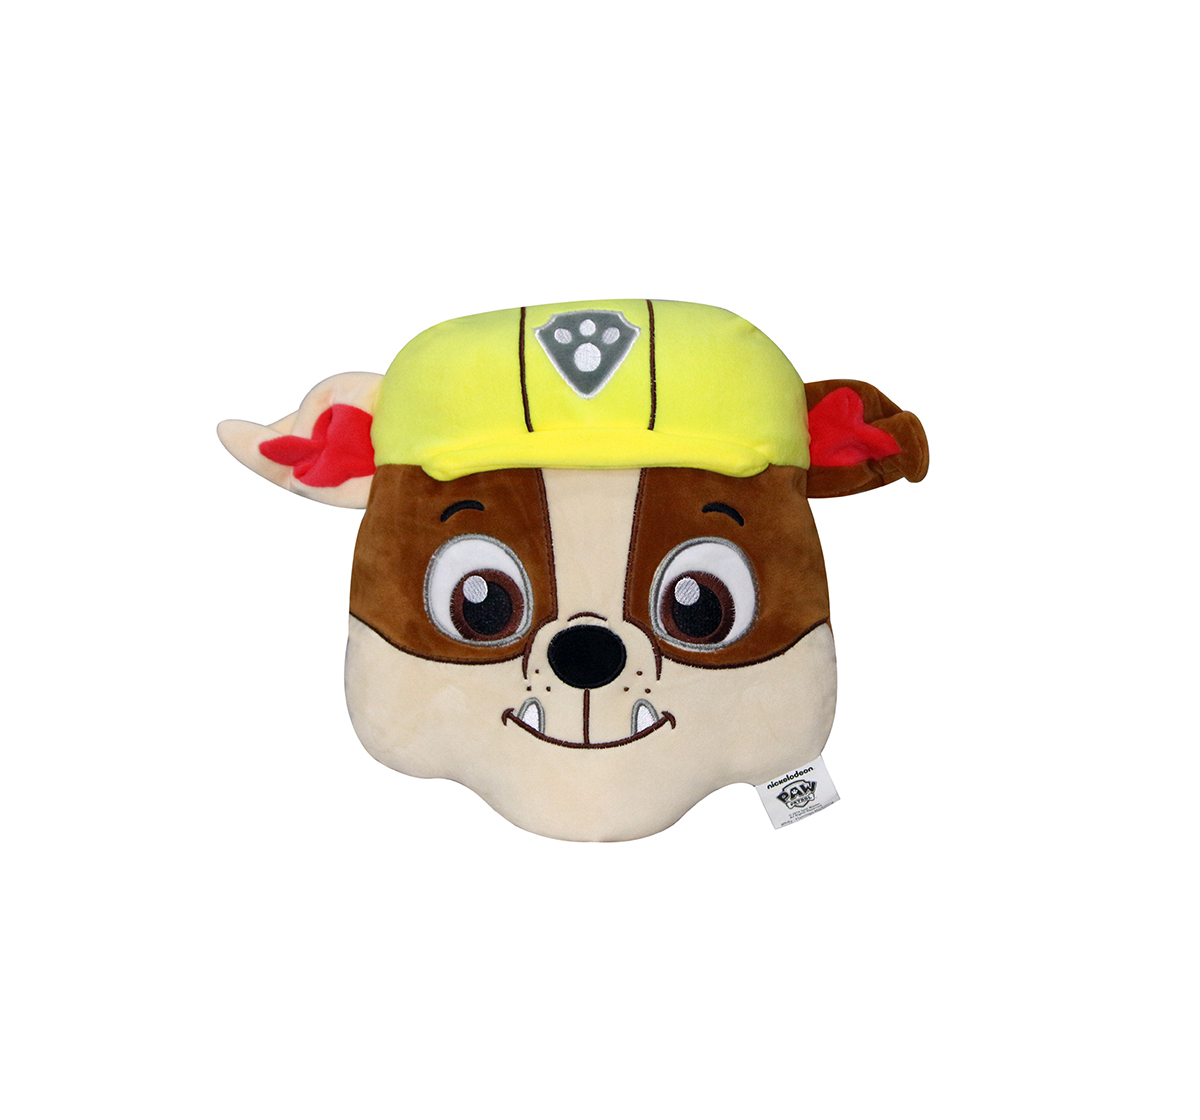 Paw Patrol | Paw Patrol Face Playtoy Rubble Plush Accessories for Kids age 12M+ - 30.48 Cm